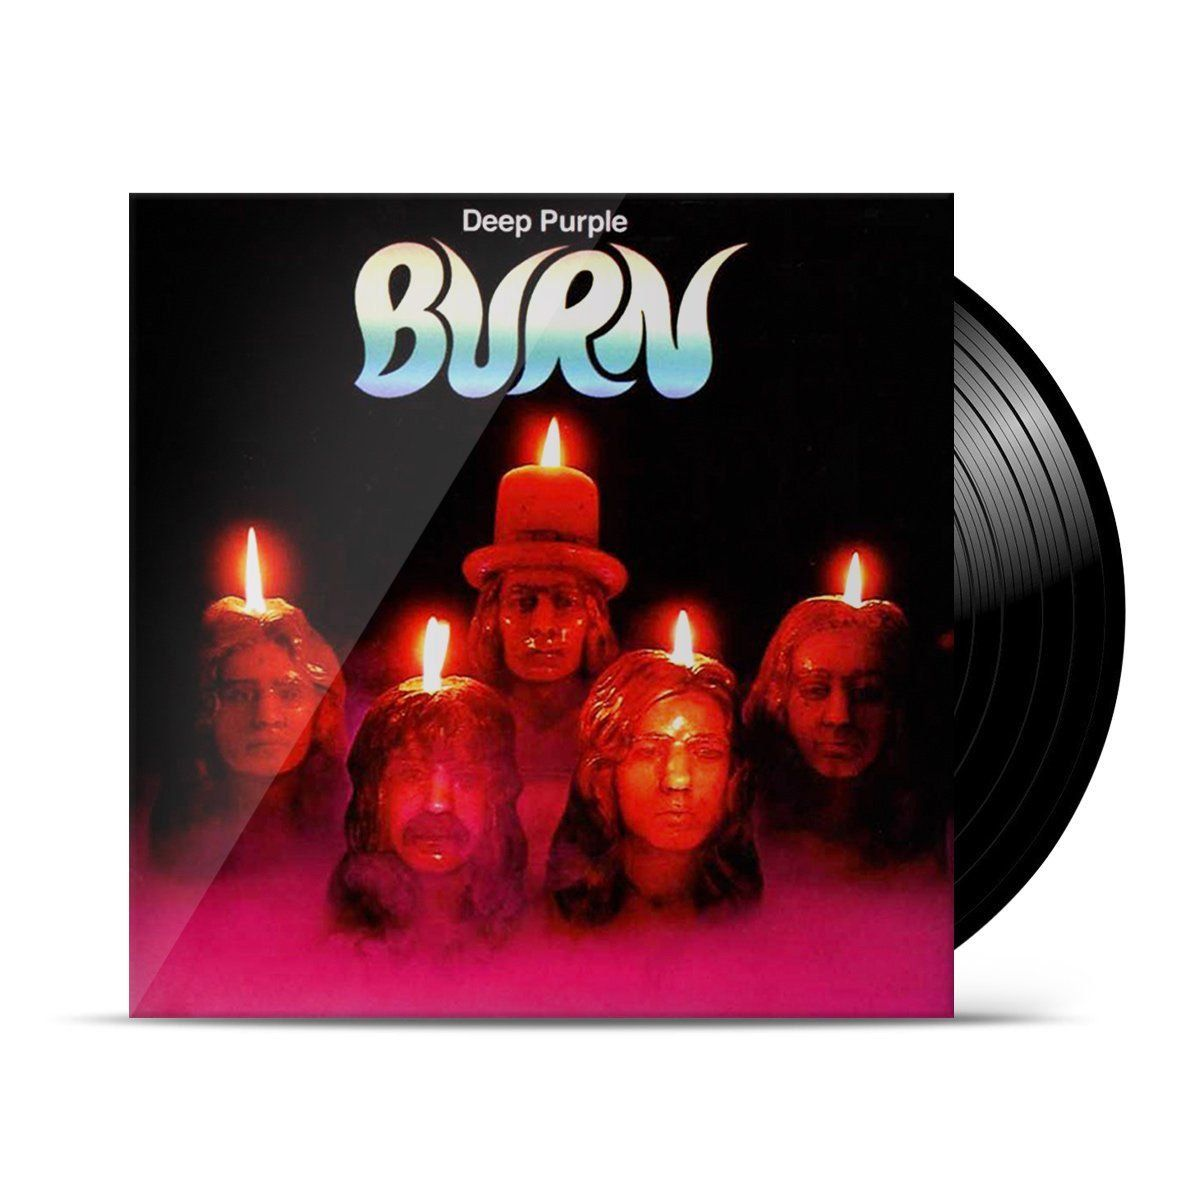 LP Deep Purple Burn  - bandUP Store Marketplace